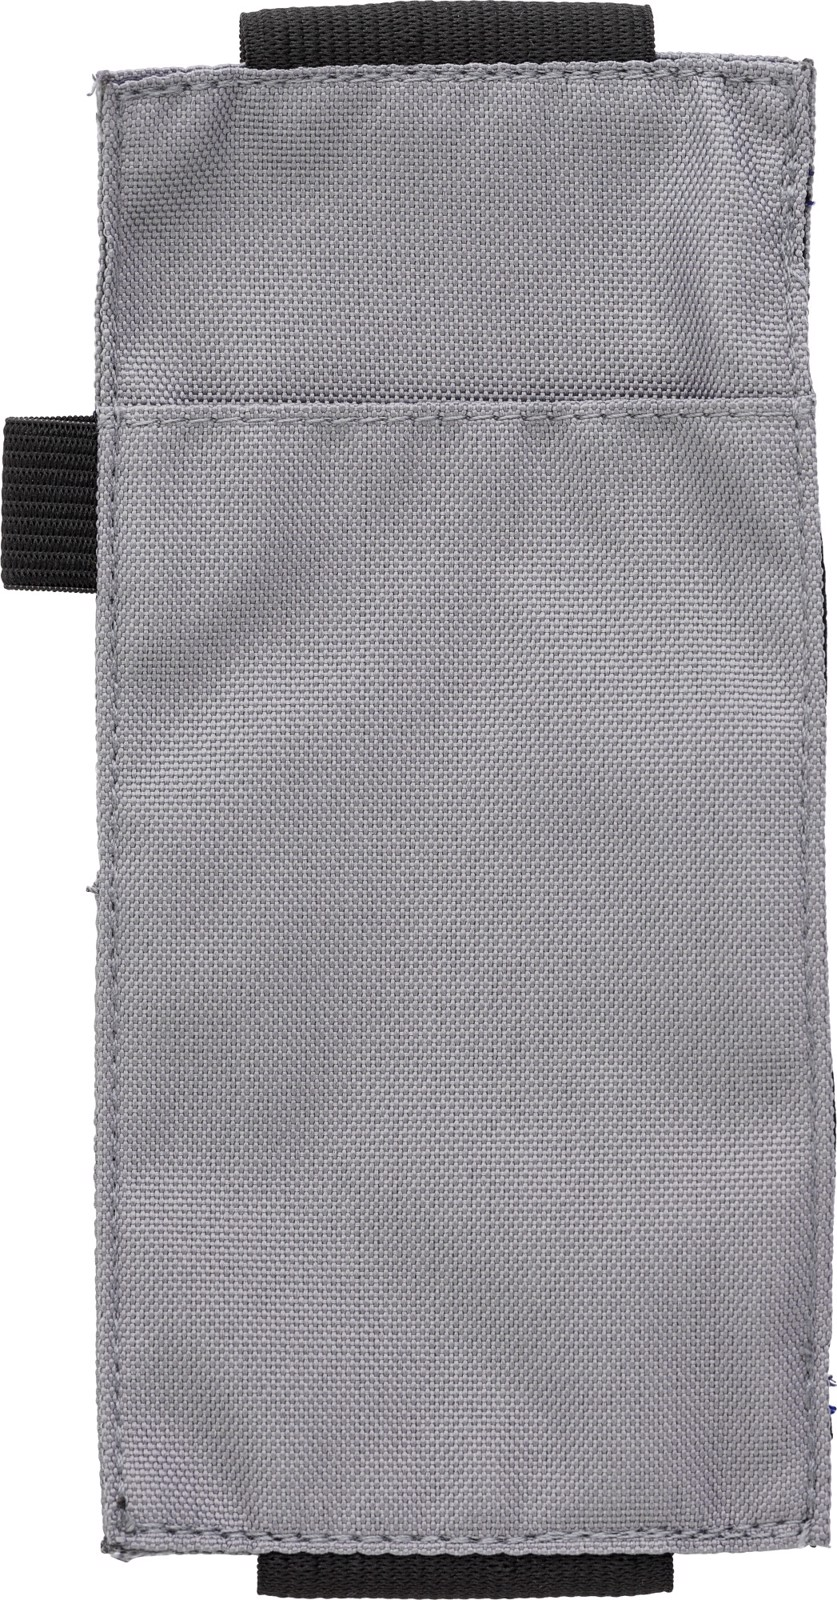 Oxford fabric (900D) notebook pouch - Grey